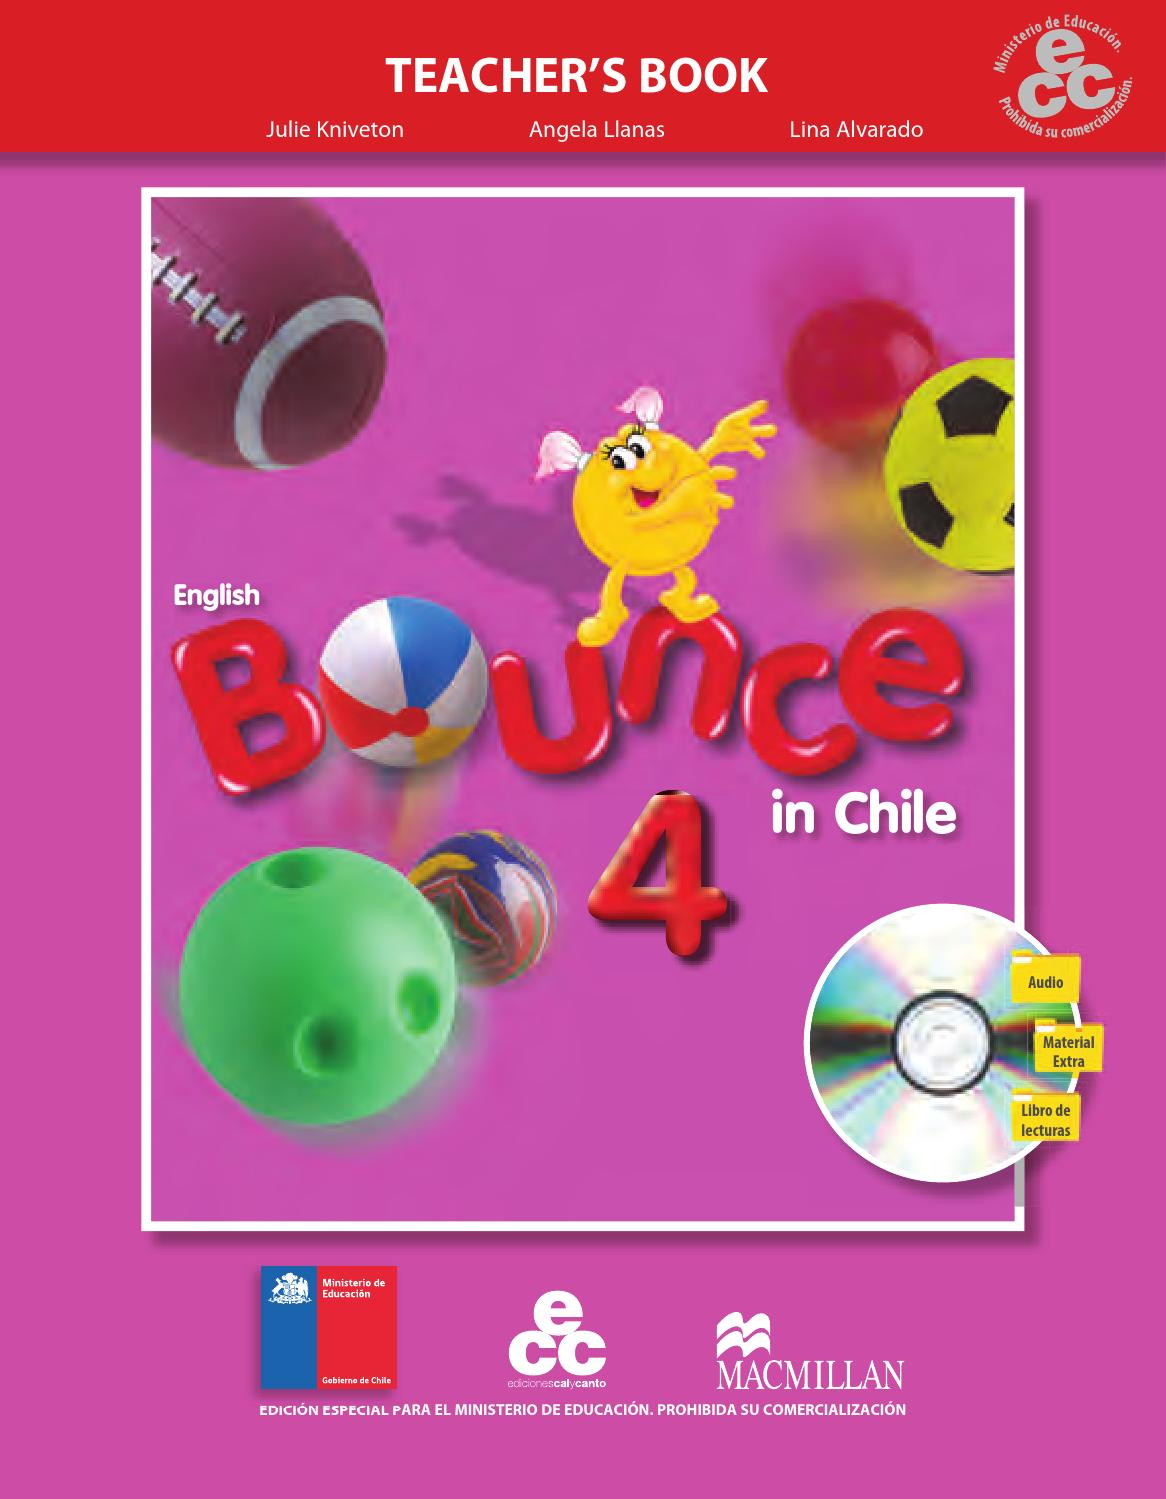 Libros Para Ingles Basico Bounce 4 In Chile Teachers Book By Kdaniels24 Issuu